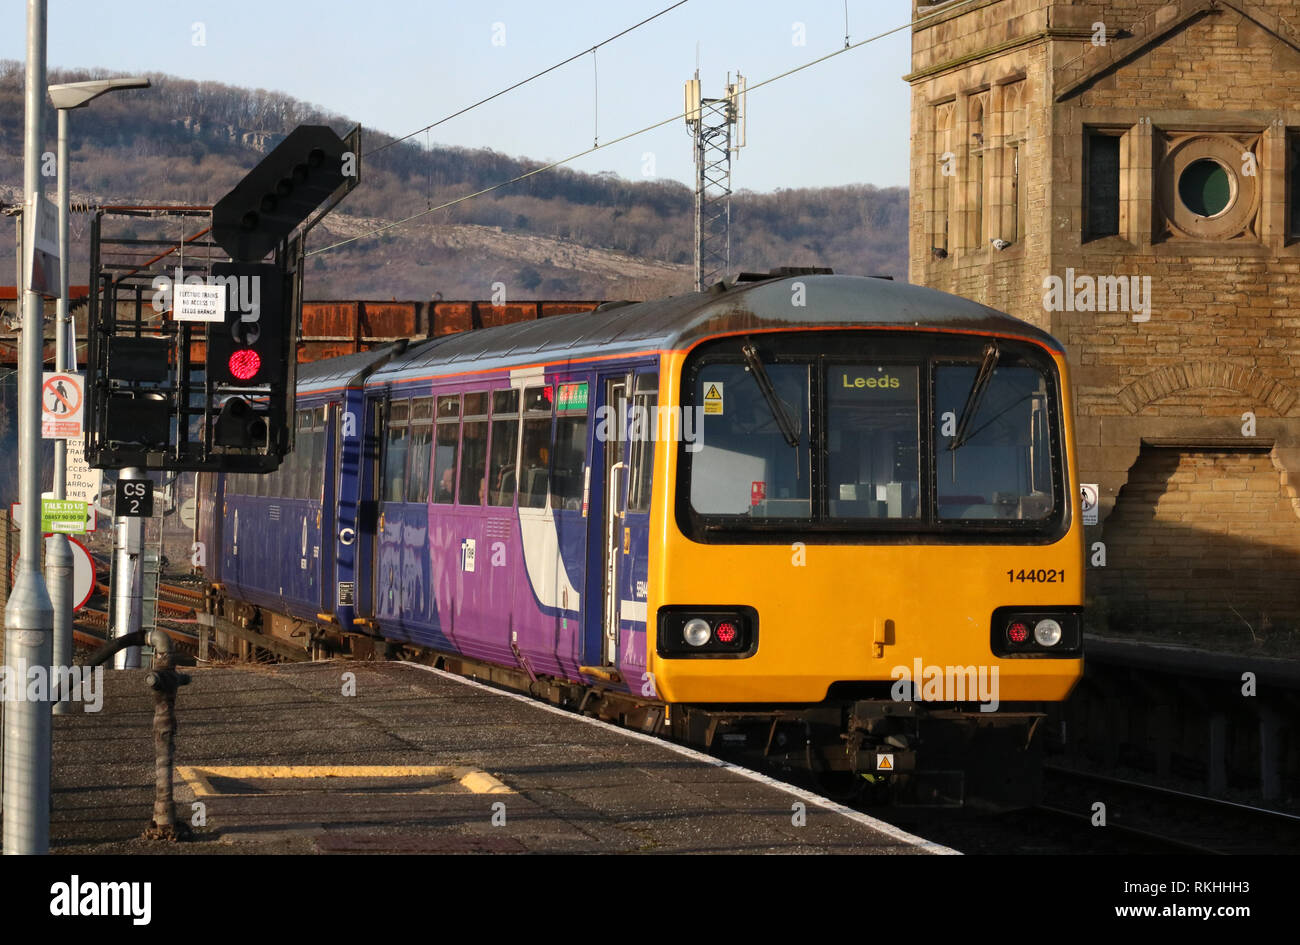 Pacer diesel multiple unit train number 144 021 in Northern livery leaving Carnforth railway station on 11th February 2019. - Stock Image